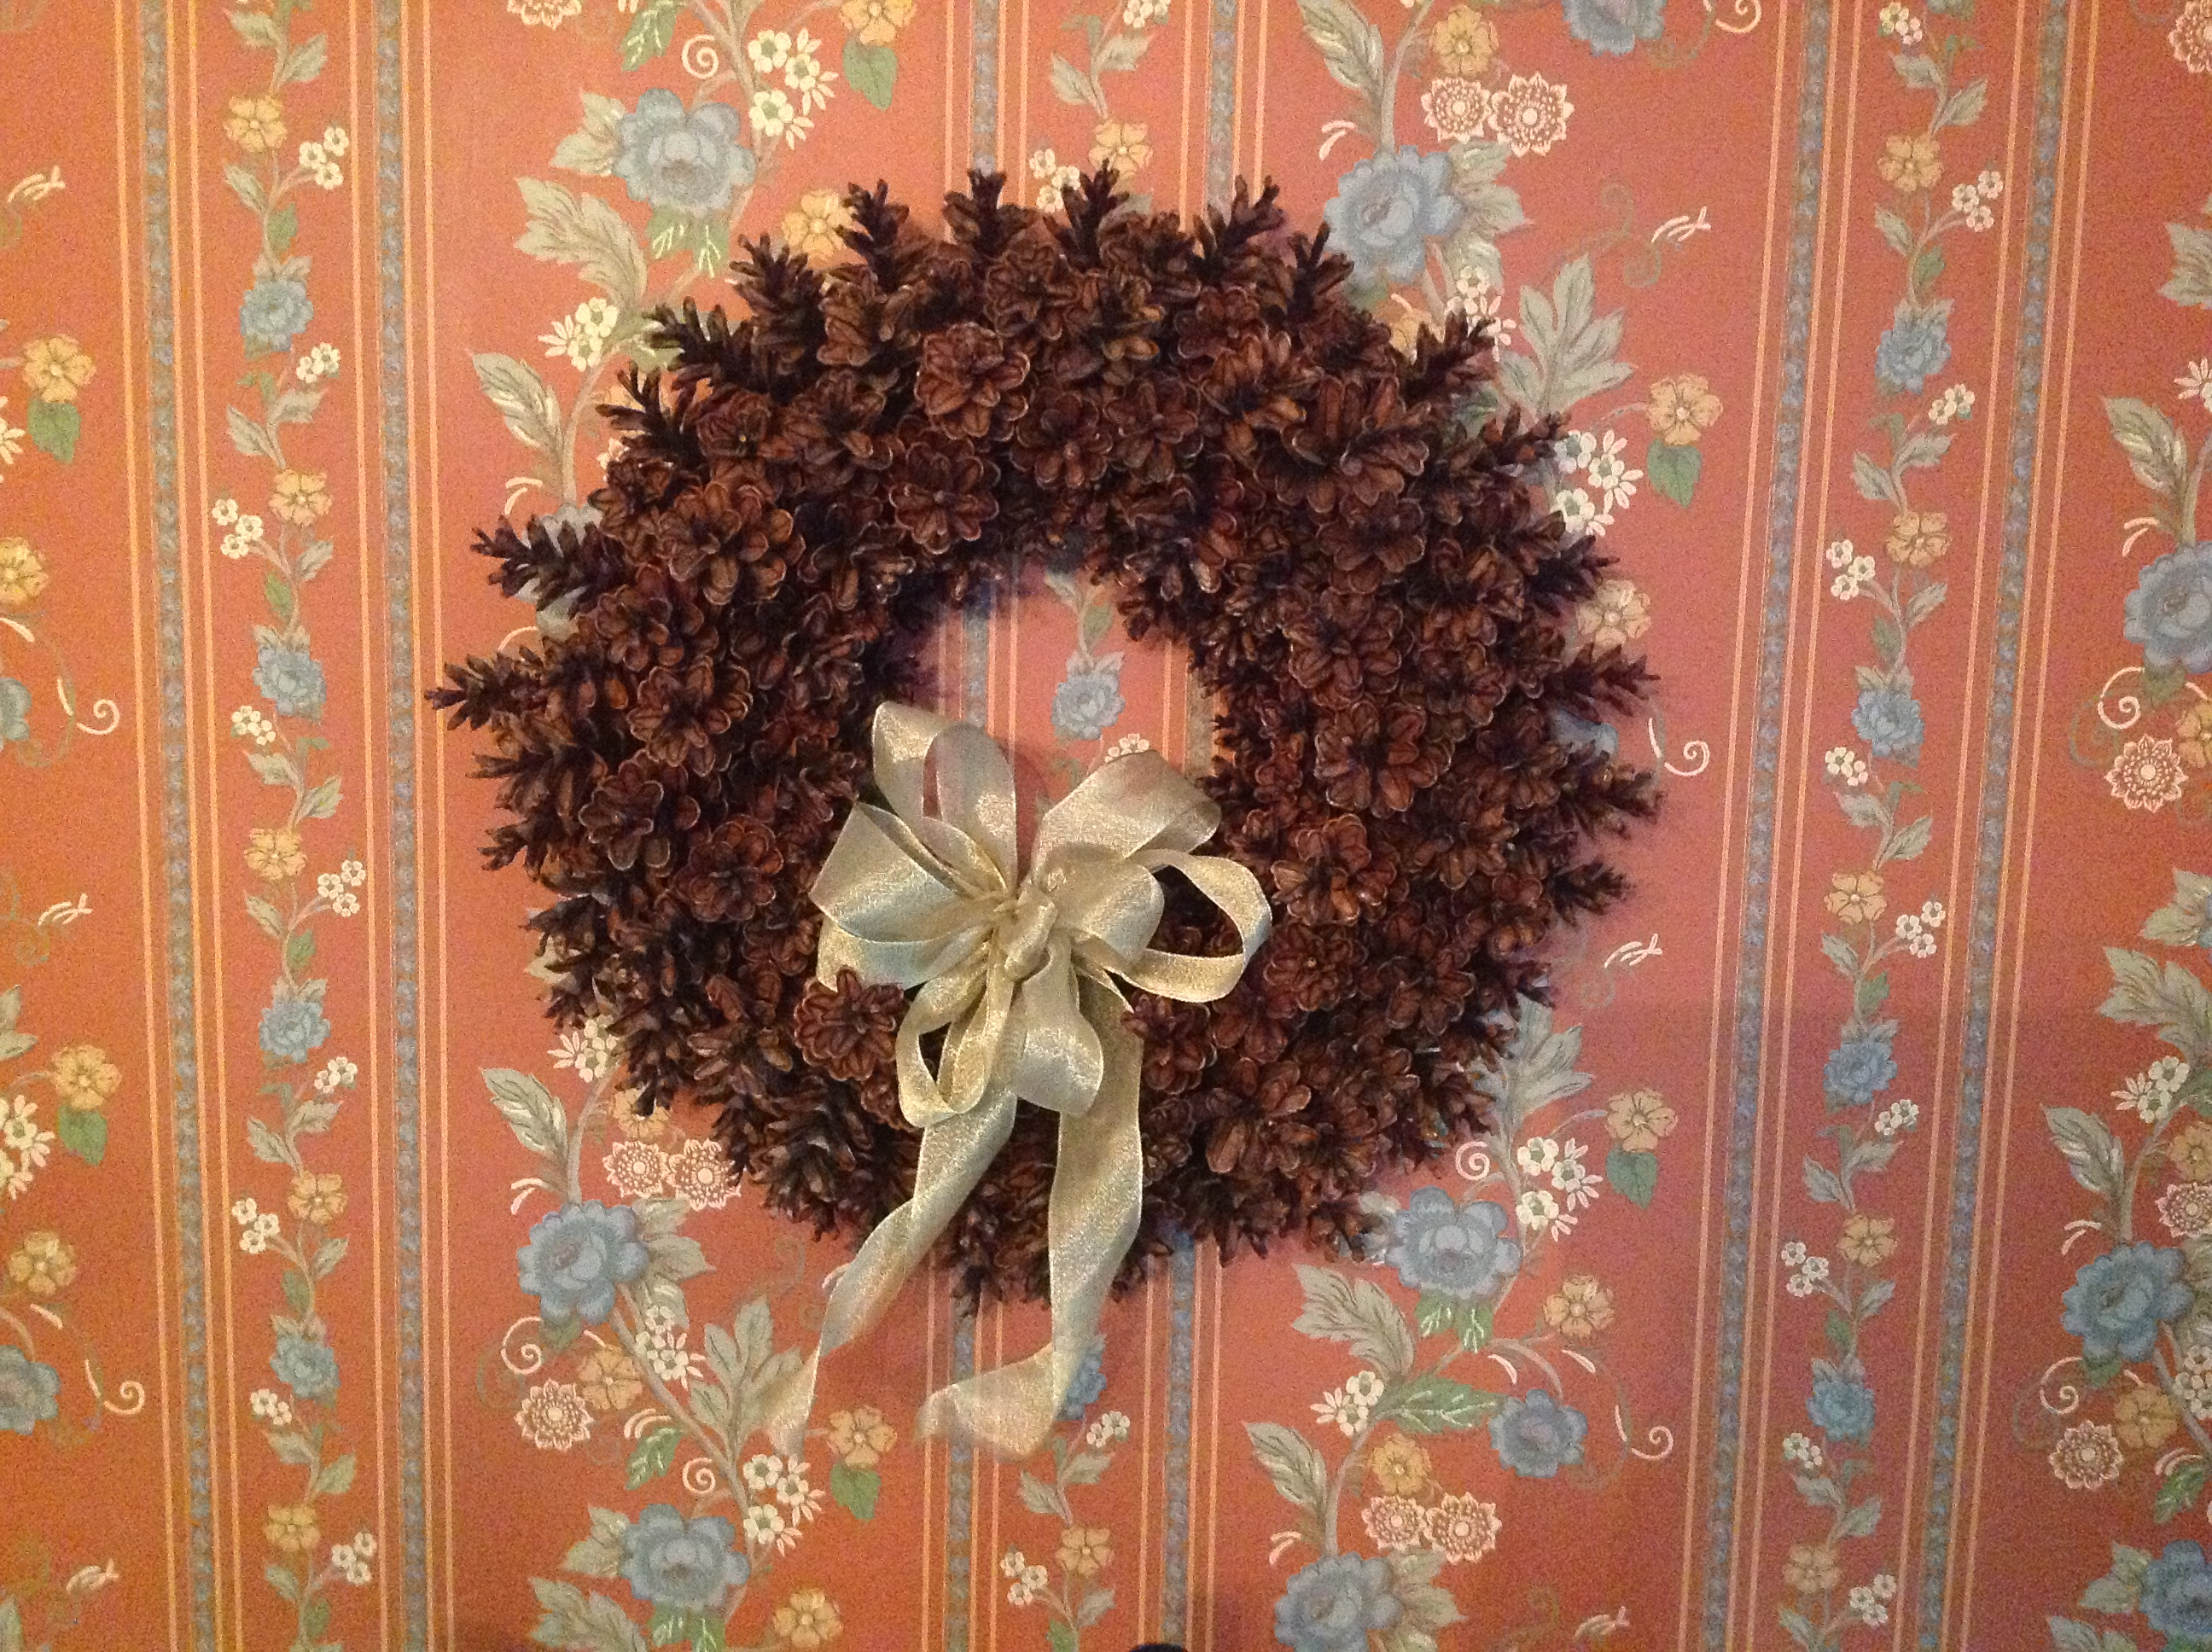 How To Make A Beautiful Pine Cone Wreath Without Gluing Or Wiring Bernice L Rocque